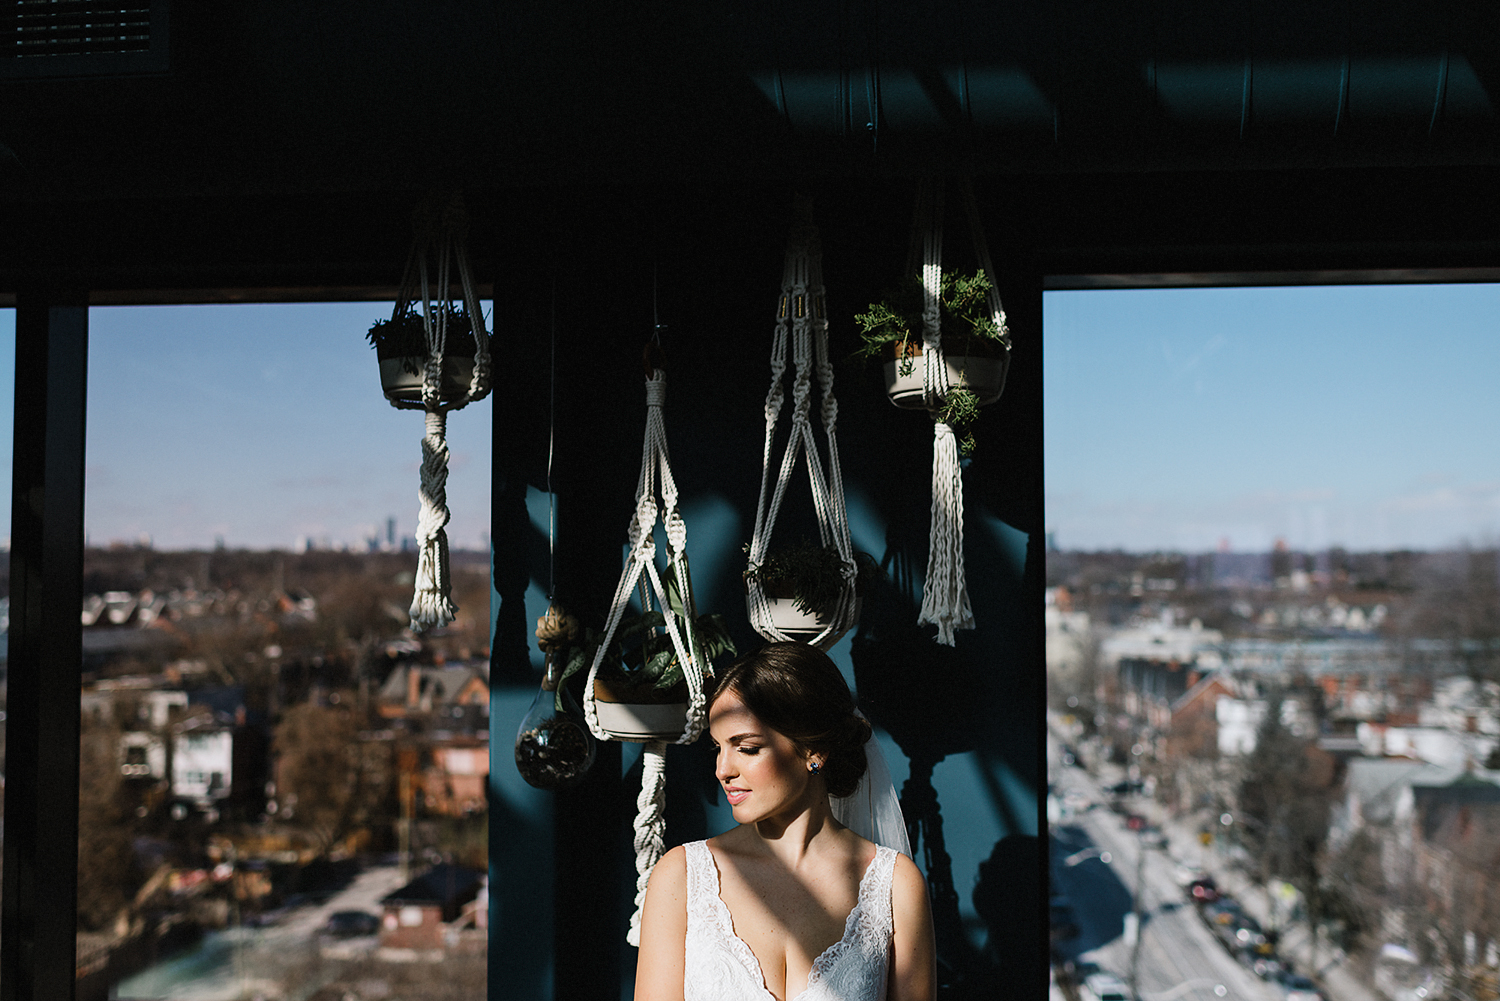 39-broadview-hotel-real-wedding-in-downtown-toronto-best-venues-broadview-hotel-wedding-photos-analog-wedding-photography-36.jpg